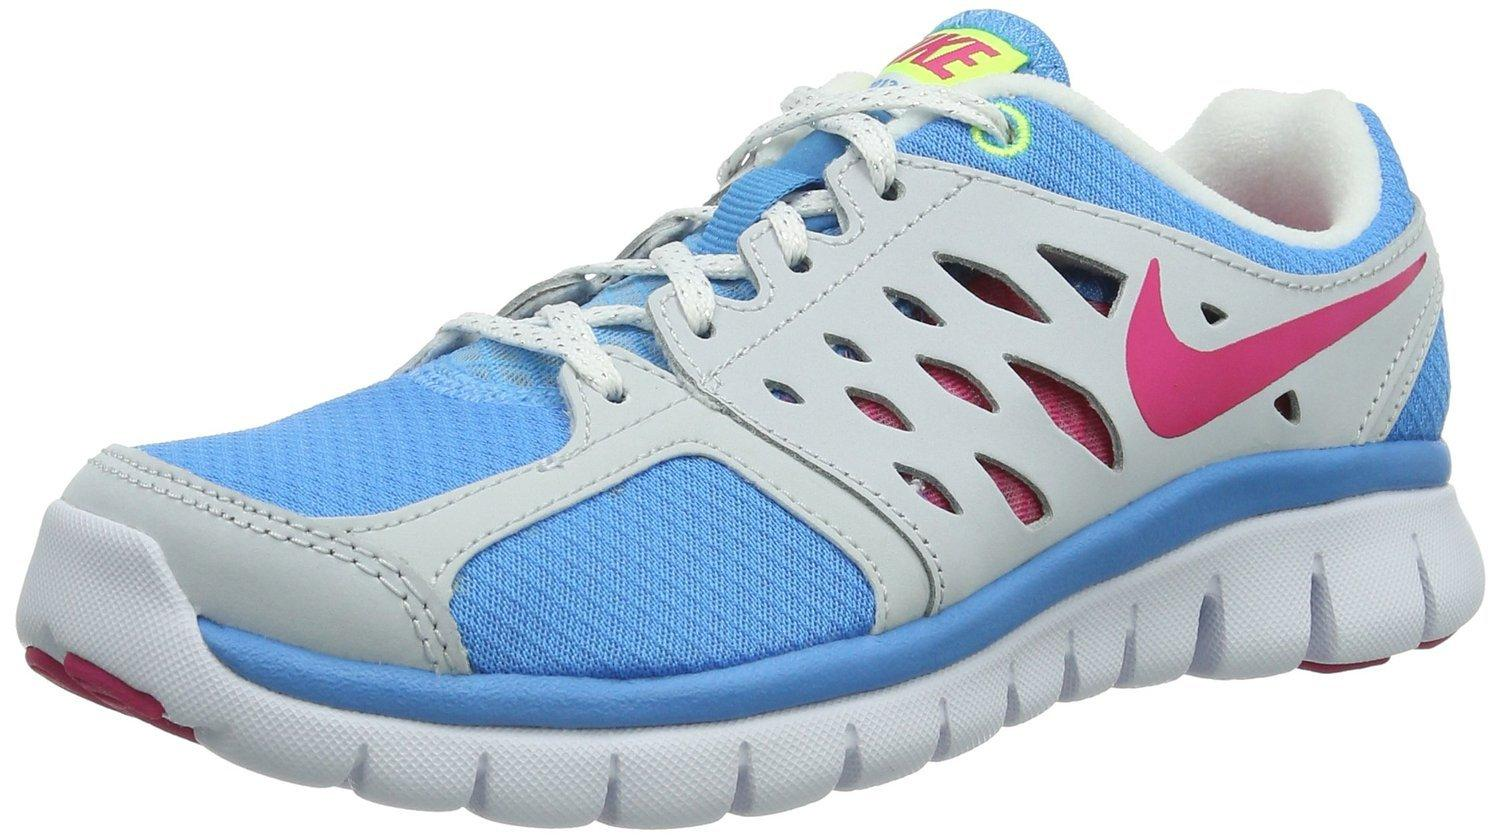 Nike Girl's Youth Flex 2013 RN GS Vivid Blue Pink Volt White Running Shoes